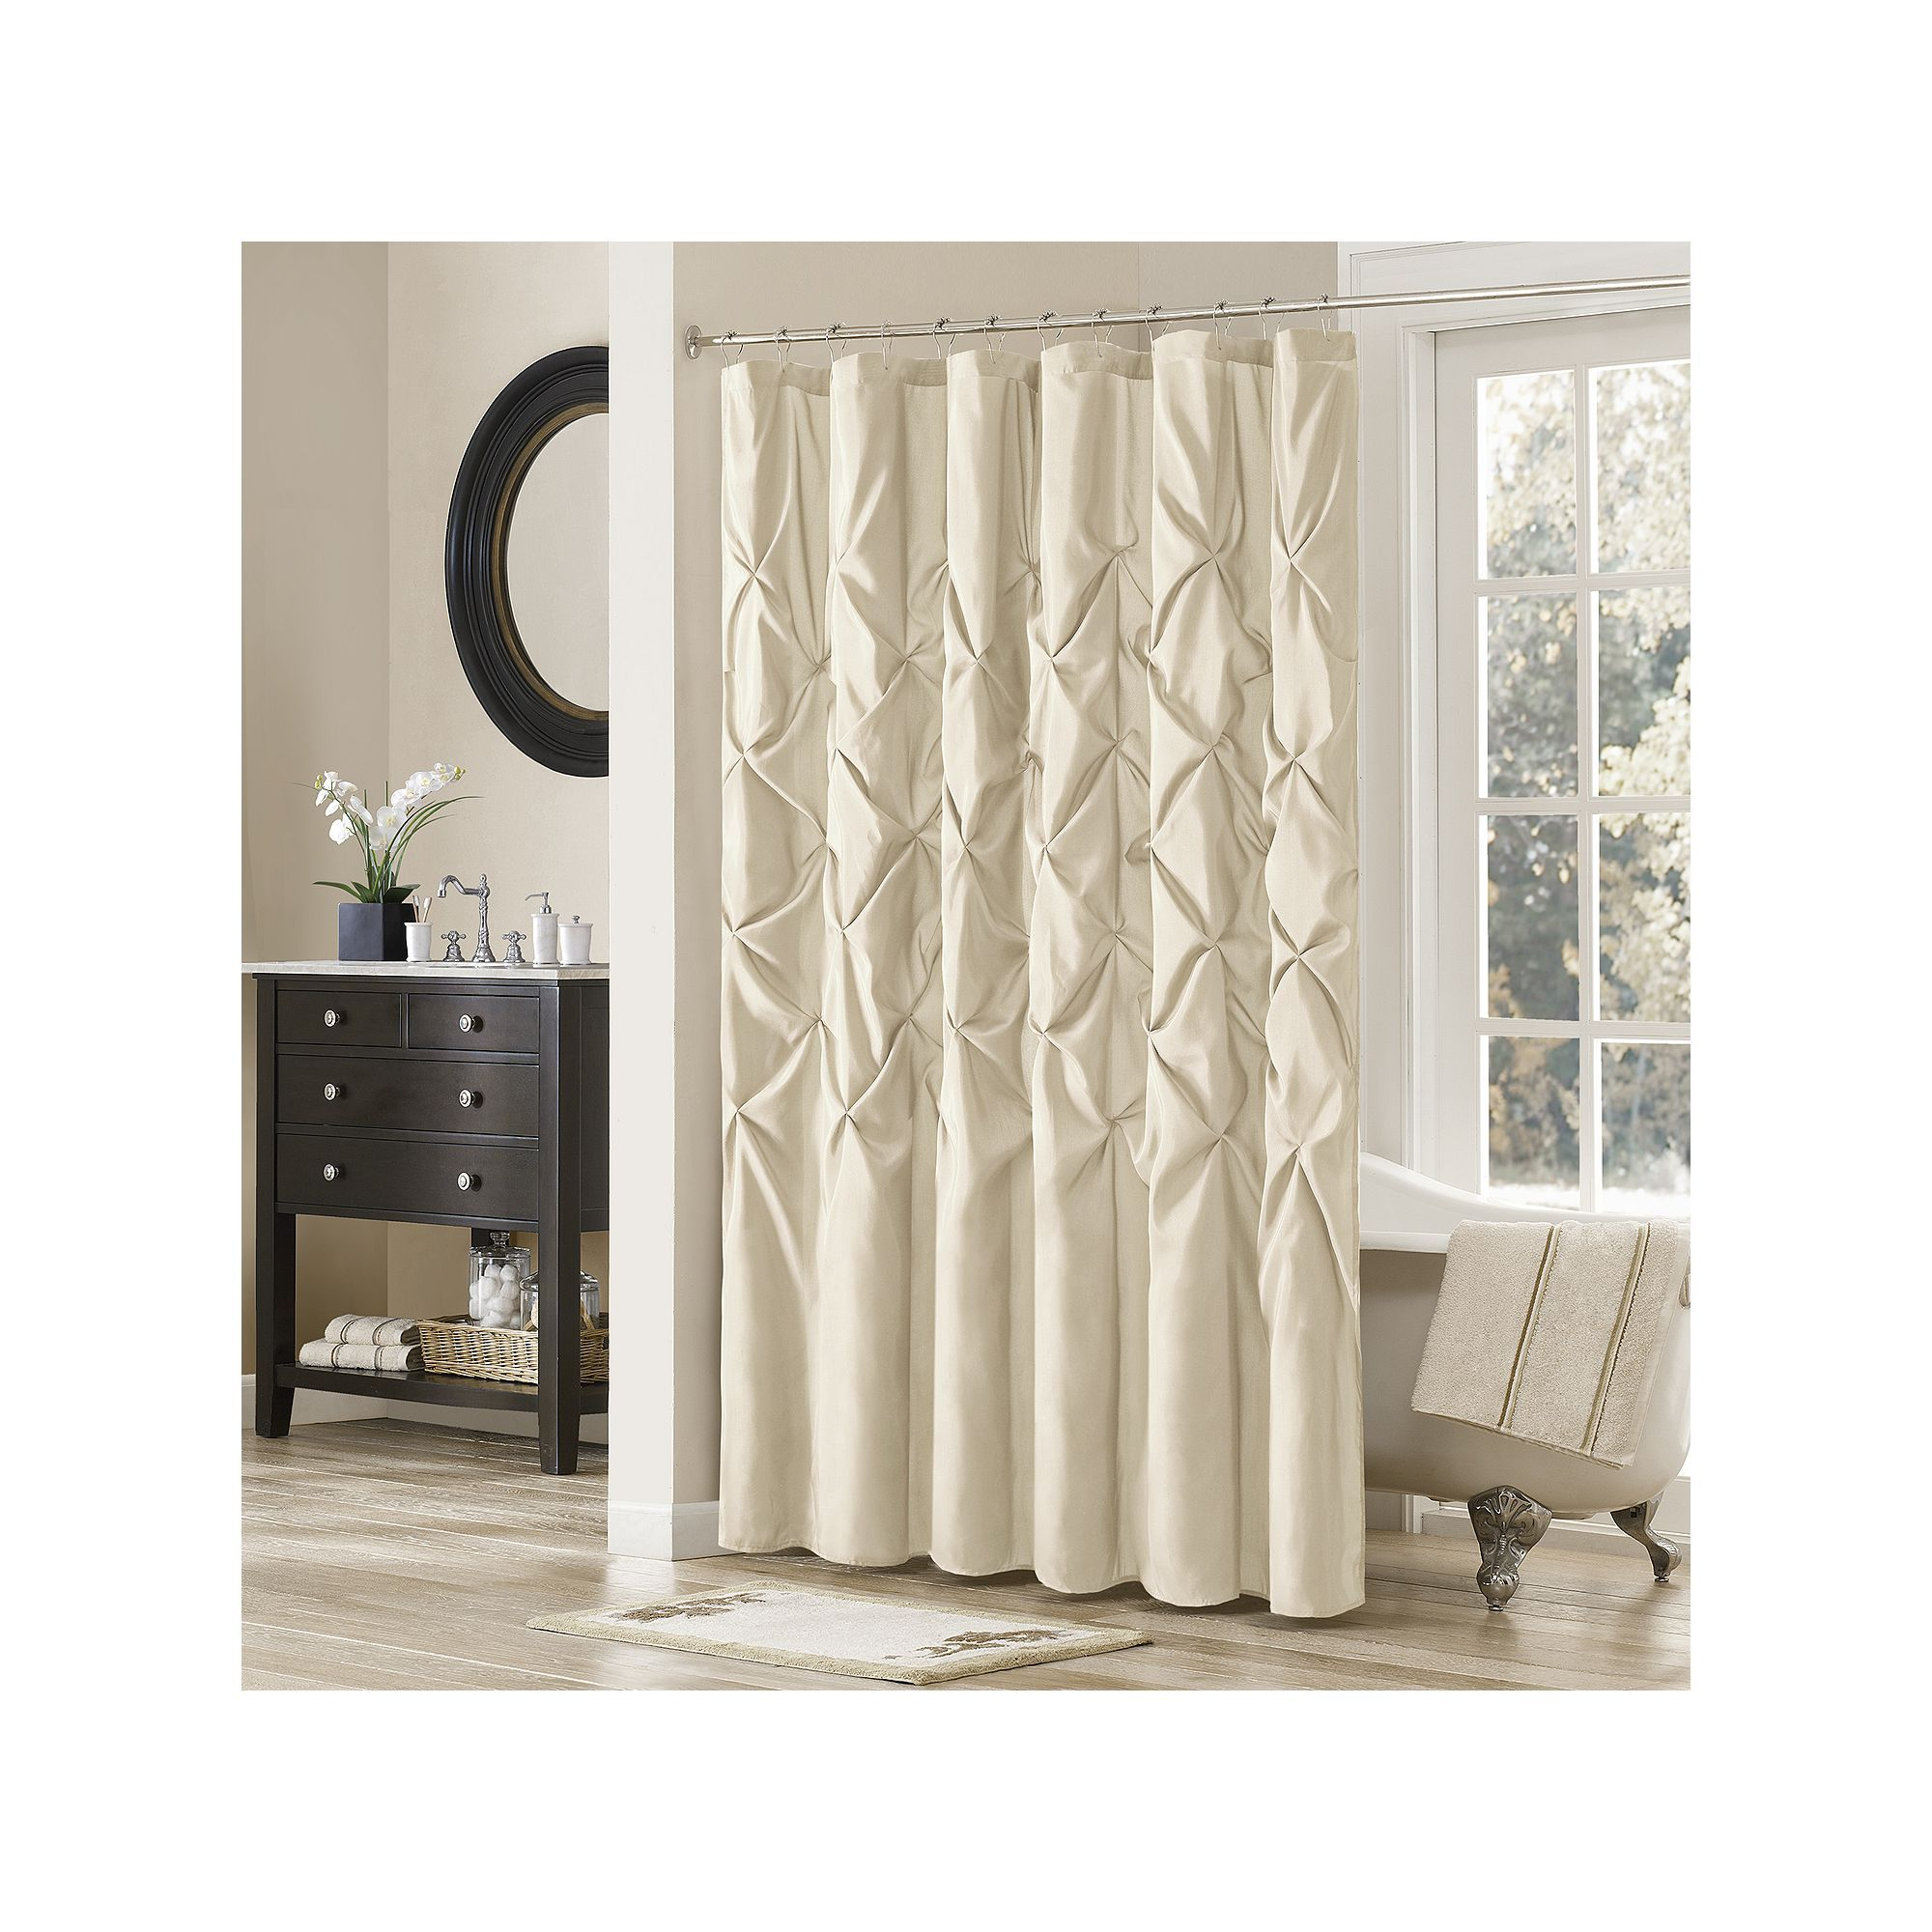 Madison park vivian tufted shower curtain grey products